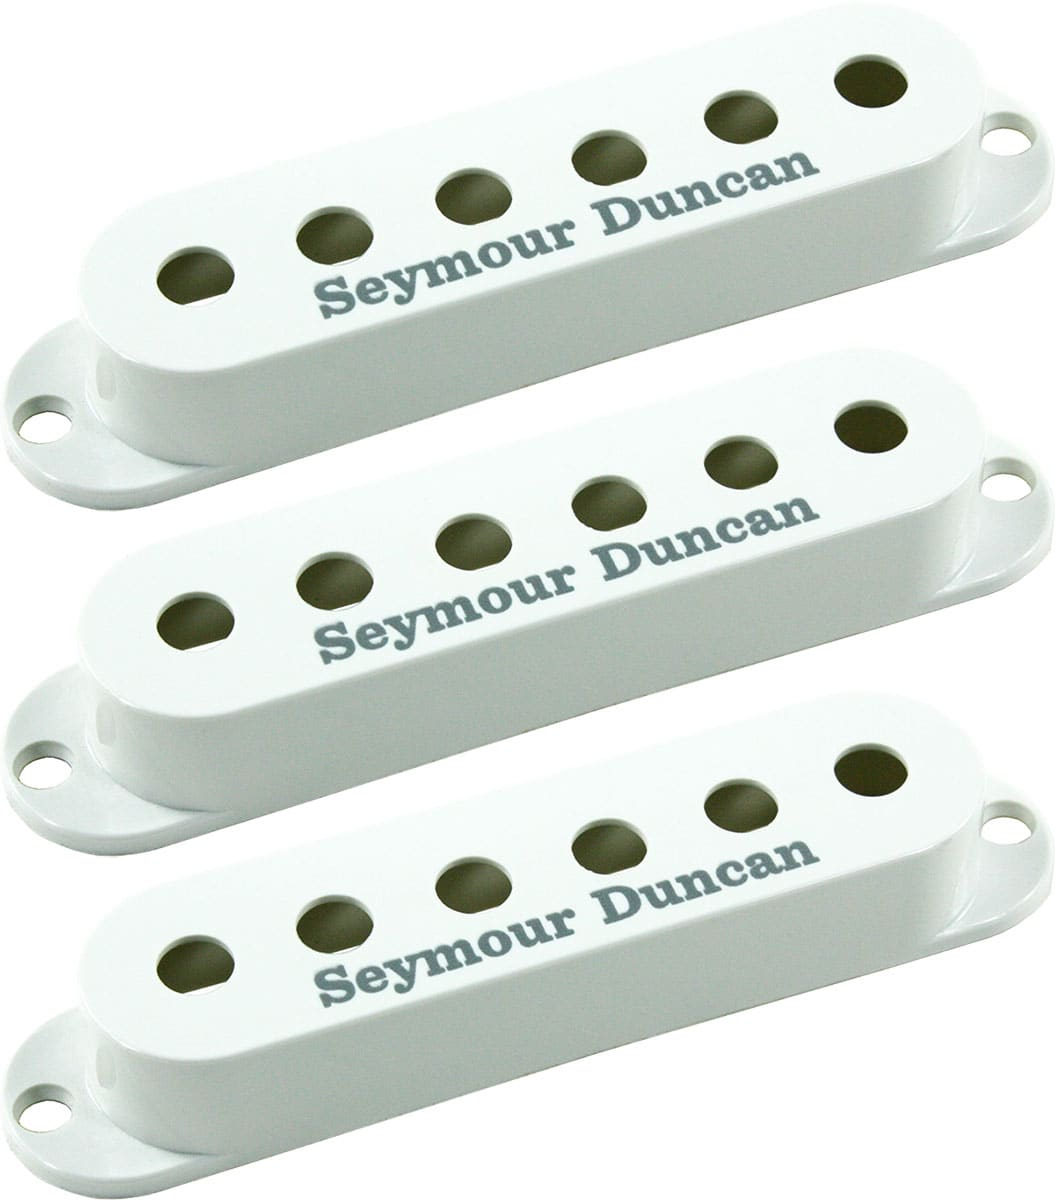 seymour duncan set of 3 pickup covers for strat single coil reverb. Black Bedroom Furniture Sets. Home Design Ideas